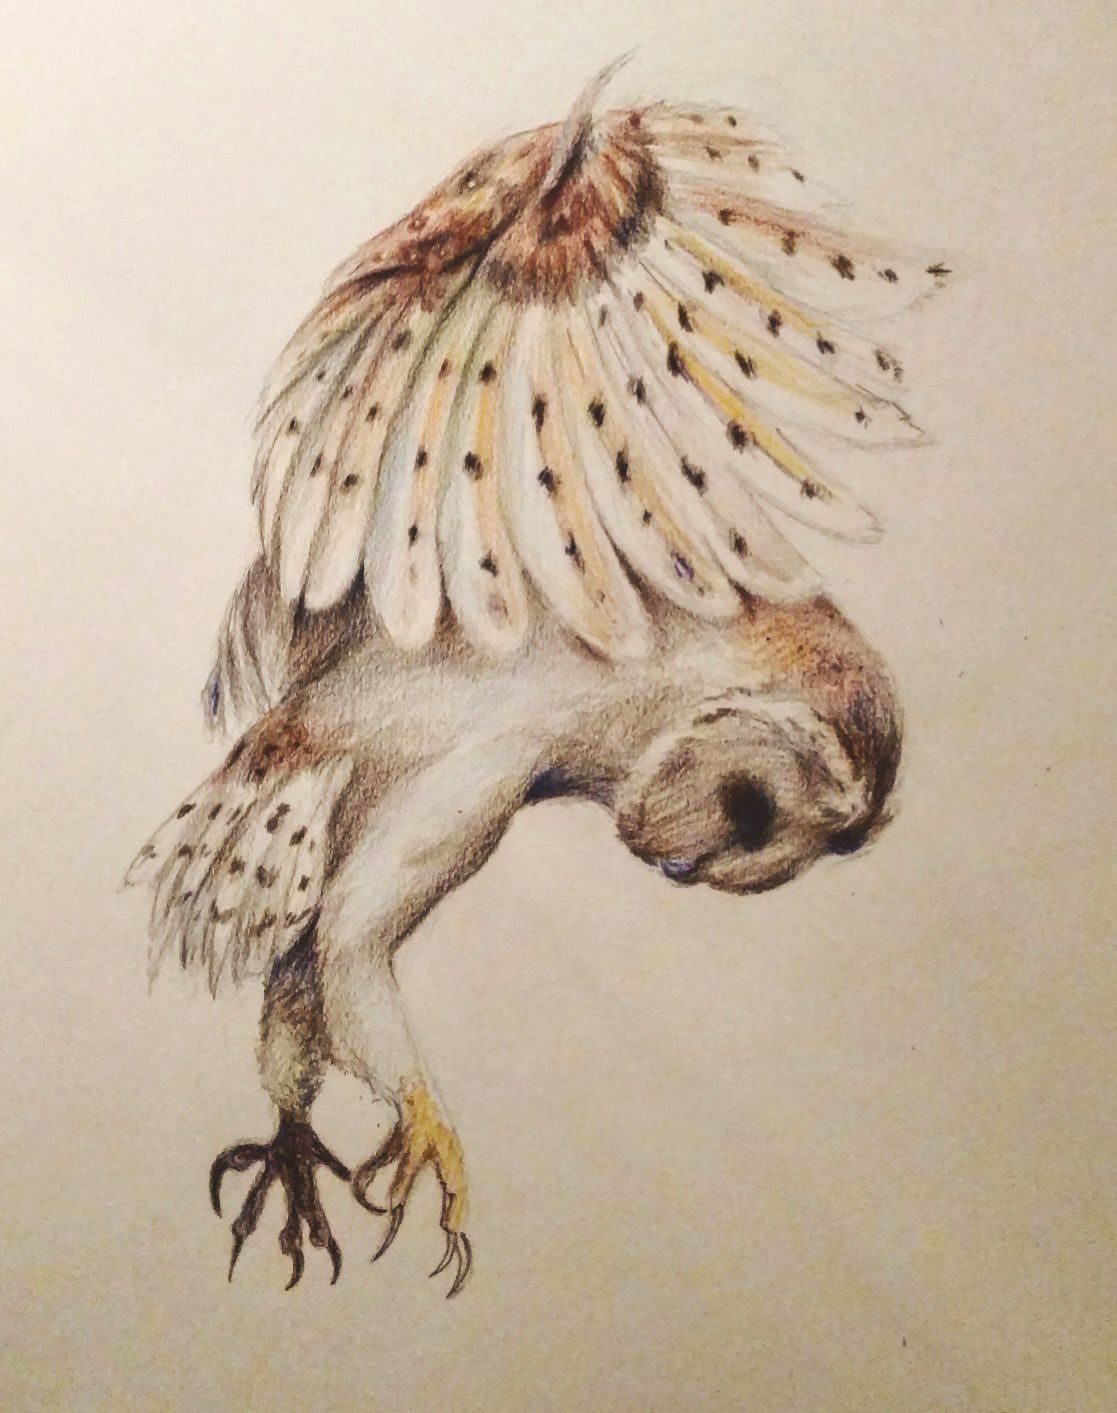 Barn Owl Attack Drawing With Colored Pencil Artist Amanda Leigh Alves